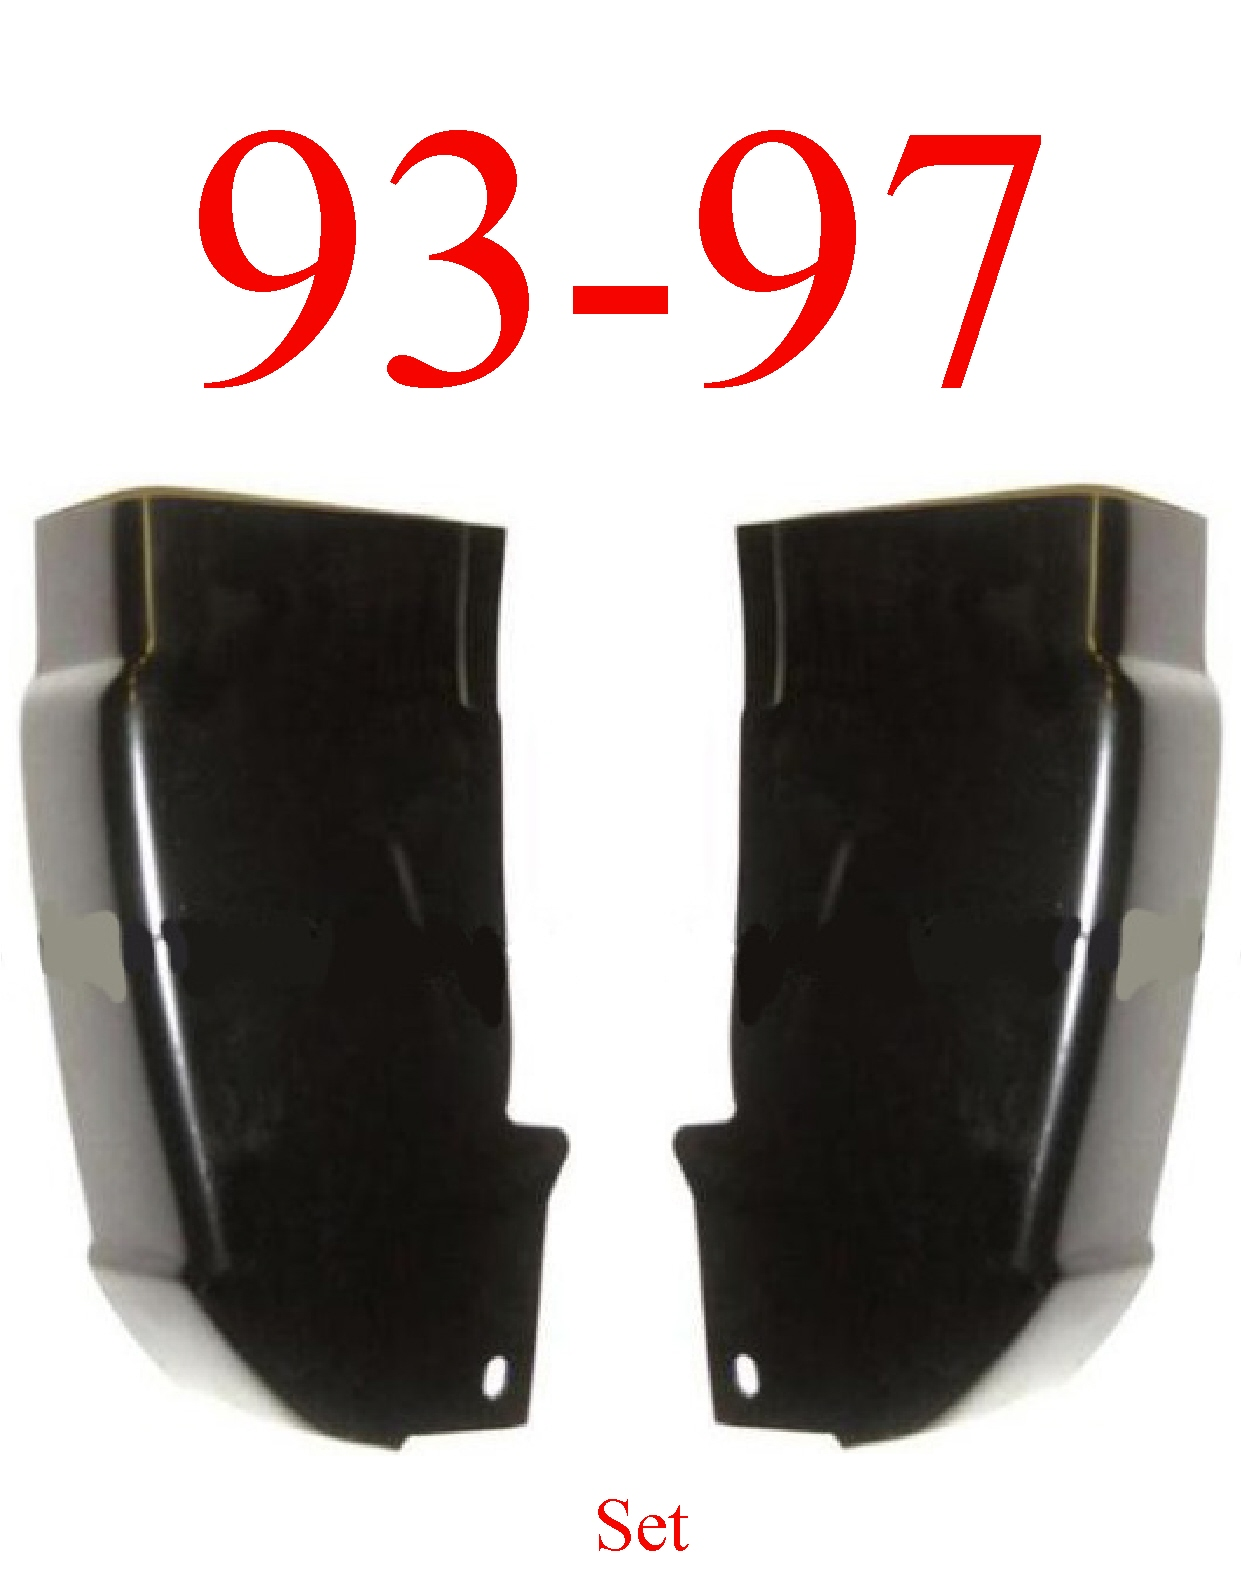 93-97 Ranger Regular Cab Corner Set